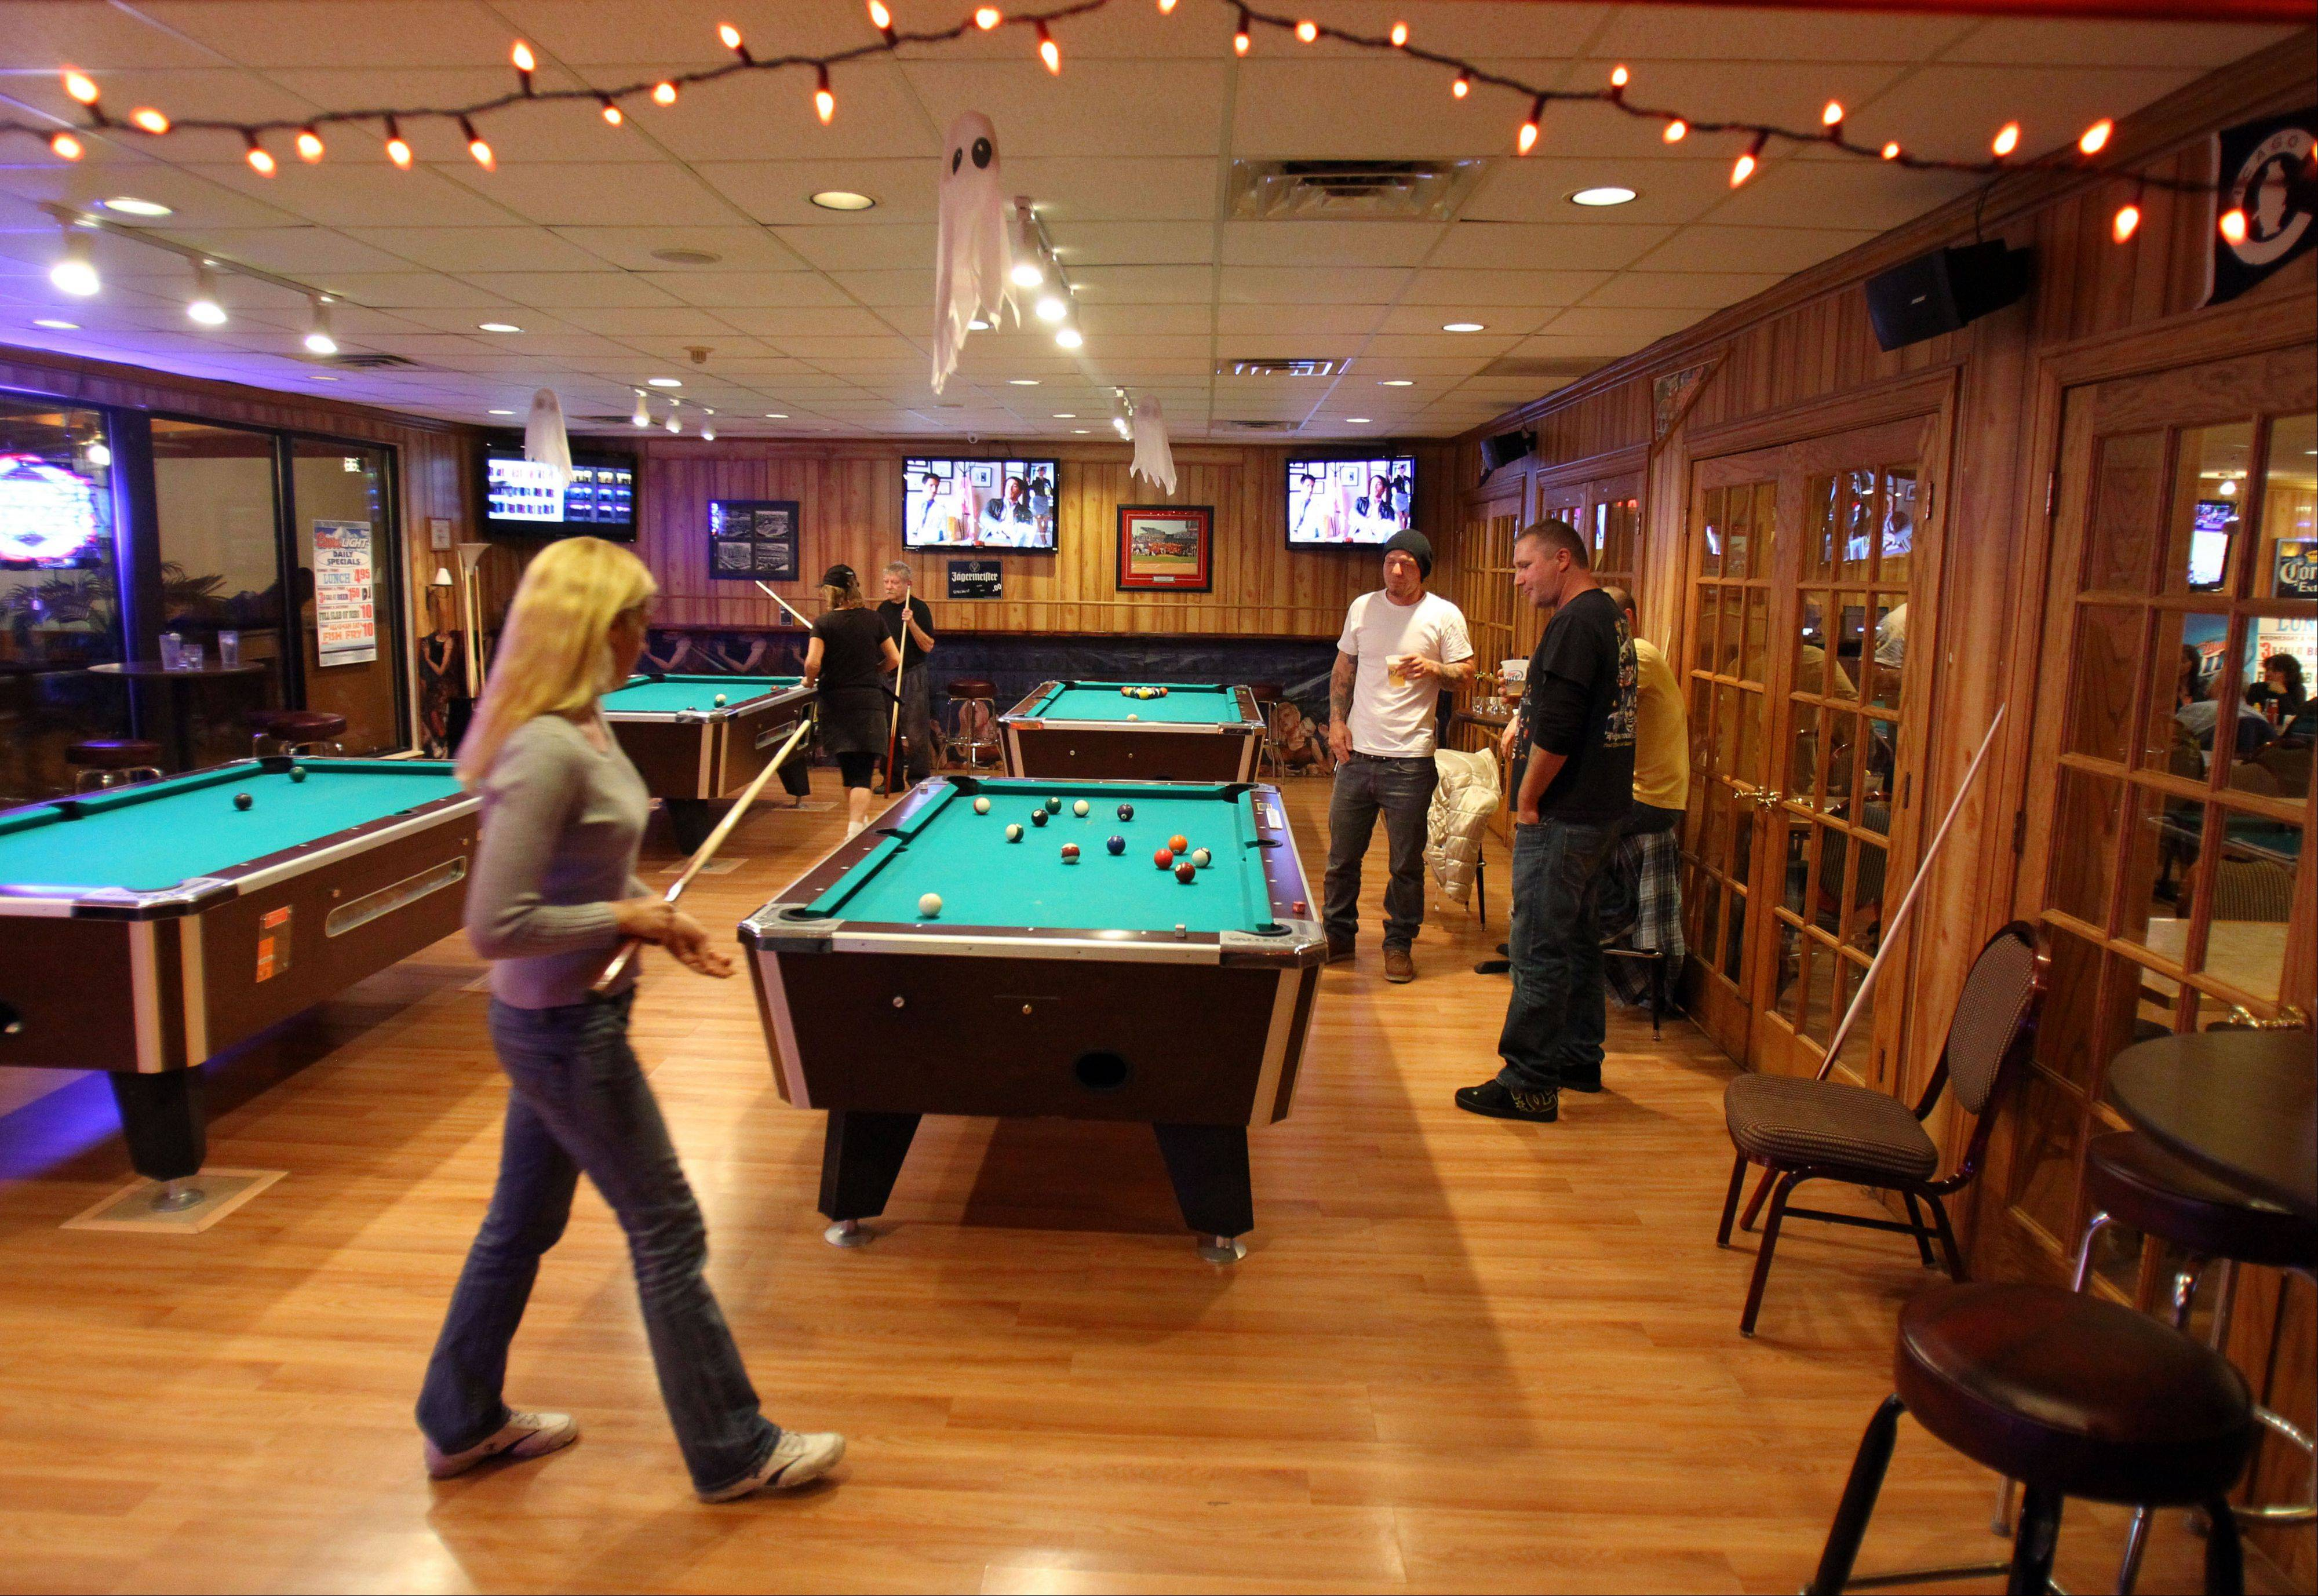 Patrons play pool at J&D Sports Bar & Grill in Wauconda.